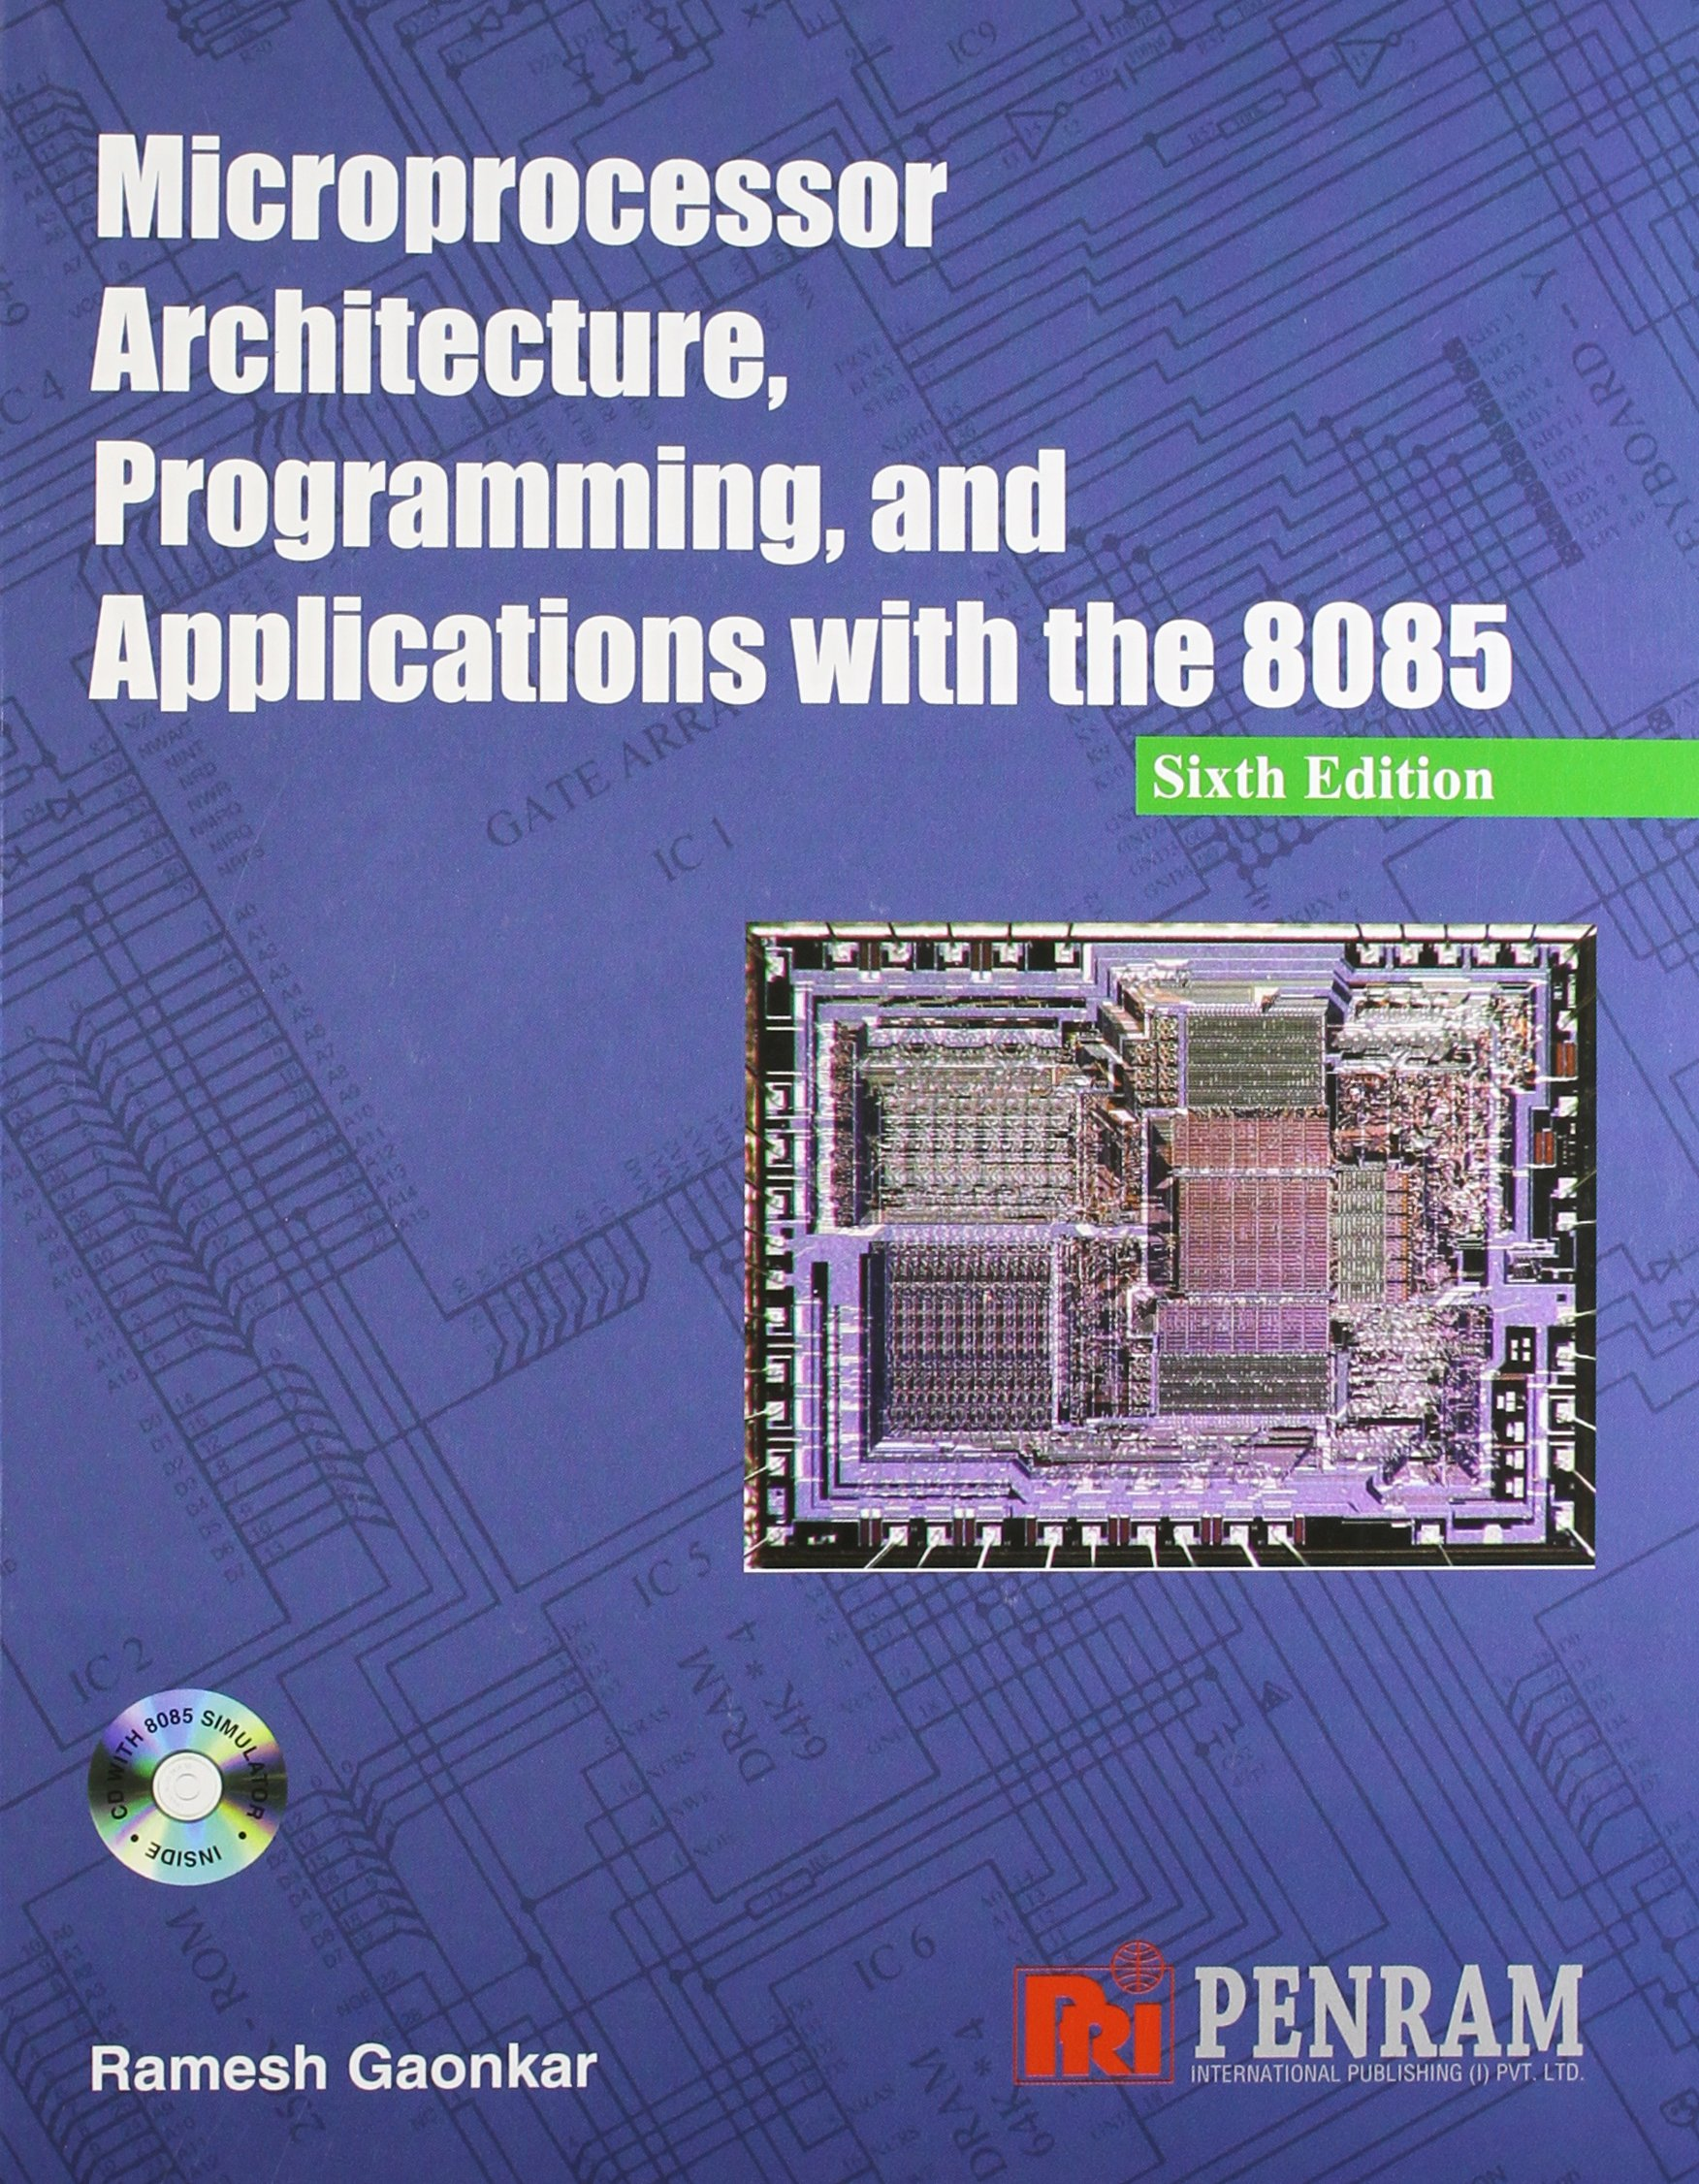 Buy Microprocessor Architecture Programming And Applications With Control Circuit Power Free Electronic Circuits 8085 The 6 E Book Online At Low Prices In India